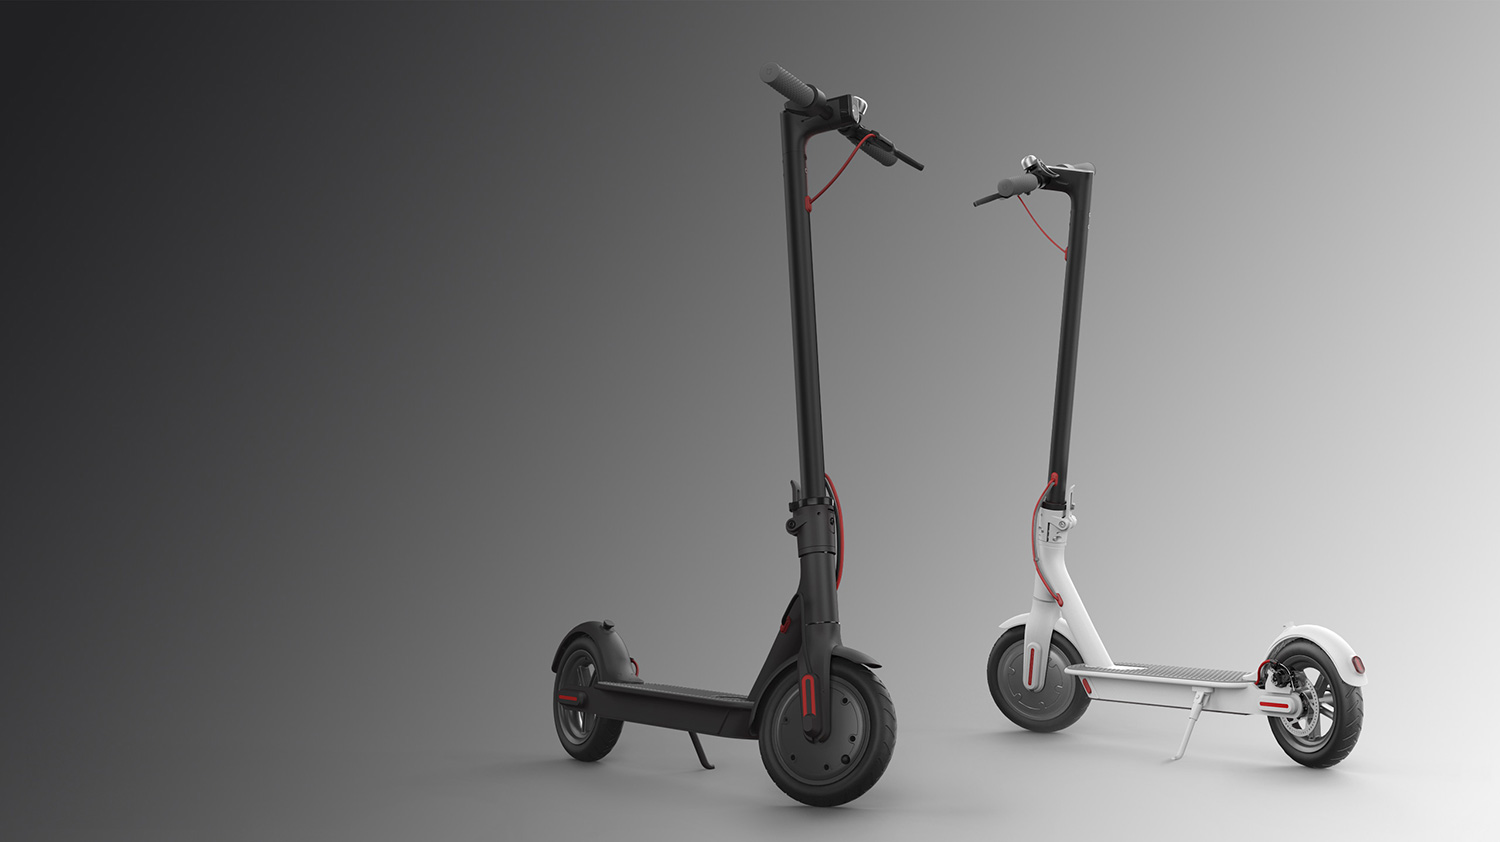 scooter-01-1442